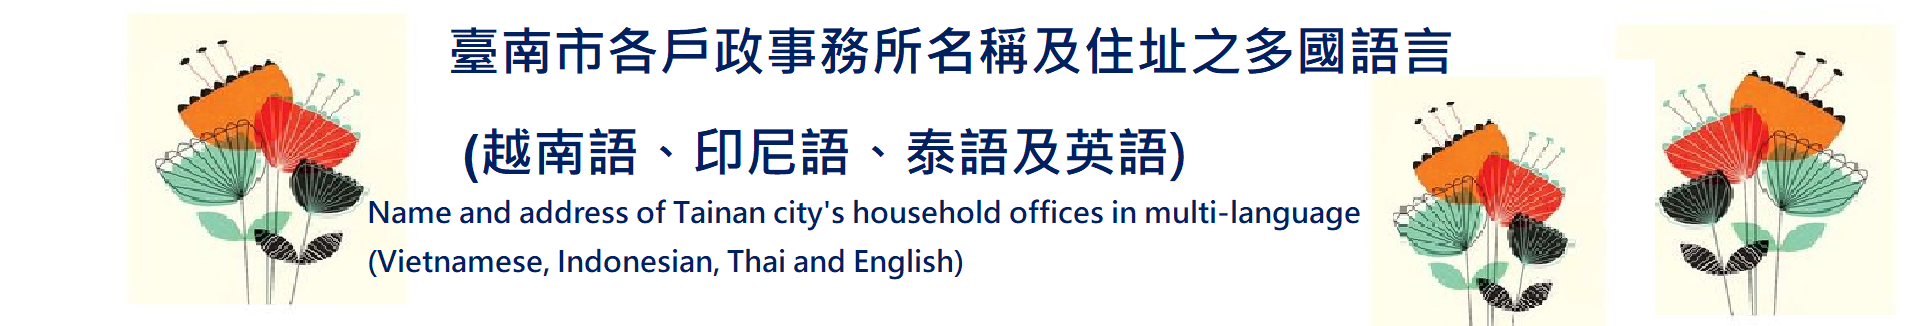 臺南市各戶政事務所名稱及住址之多國語言Name and address of Tainan city's household offices in multi-language (Vietnamese, Indonesian, Thai and English)